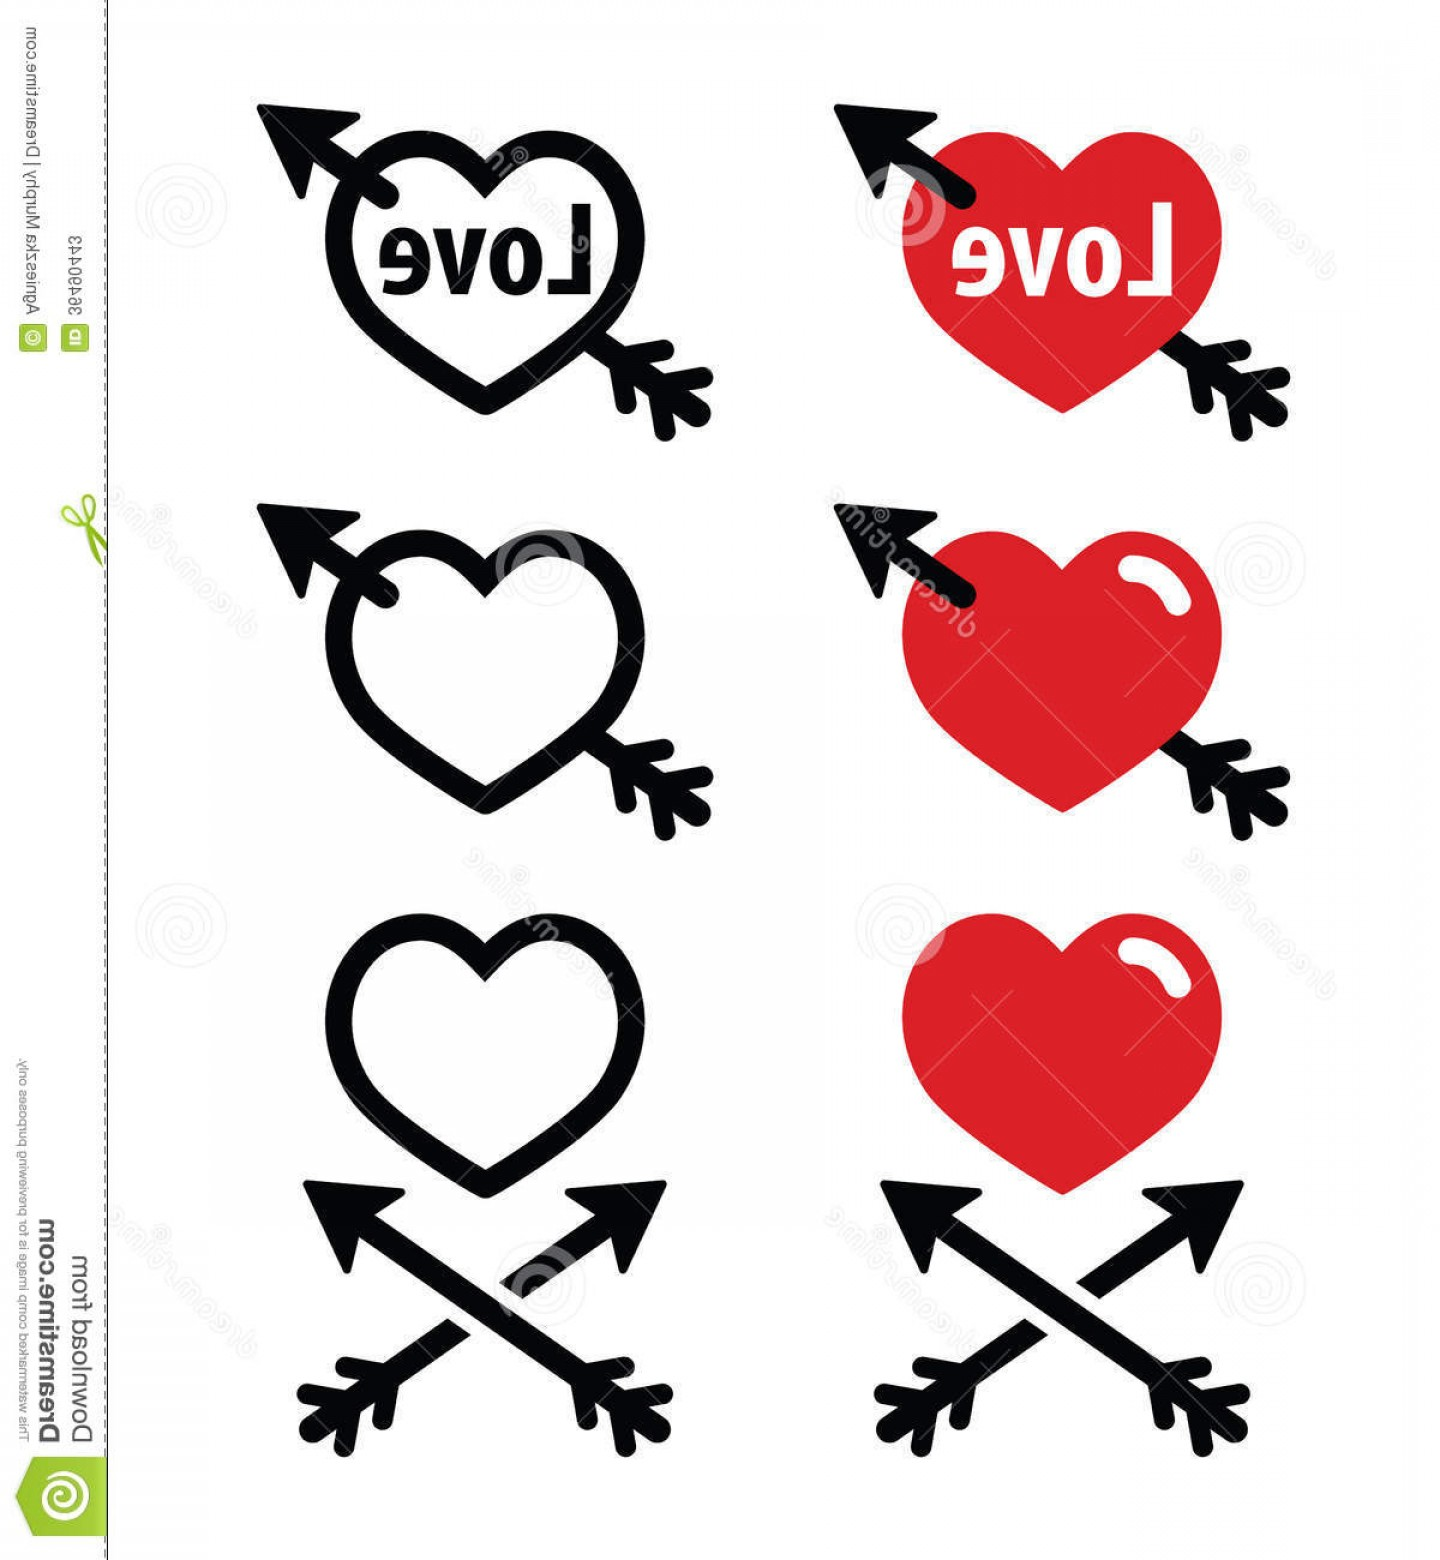 Love With Arrows Vector: Stock Photos Hearts Arrow Love Valentines Icons Set Vector Arrows Isolated White Image